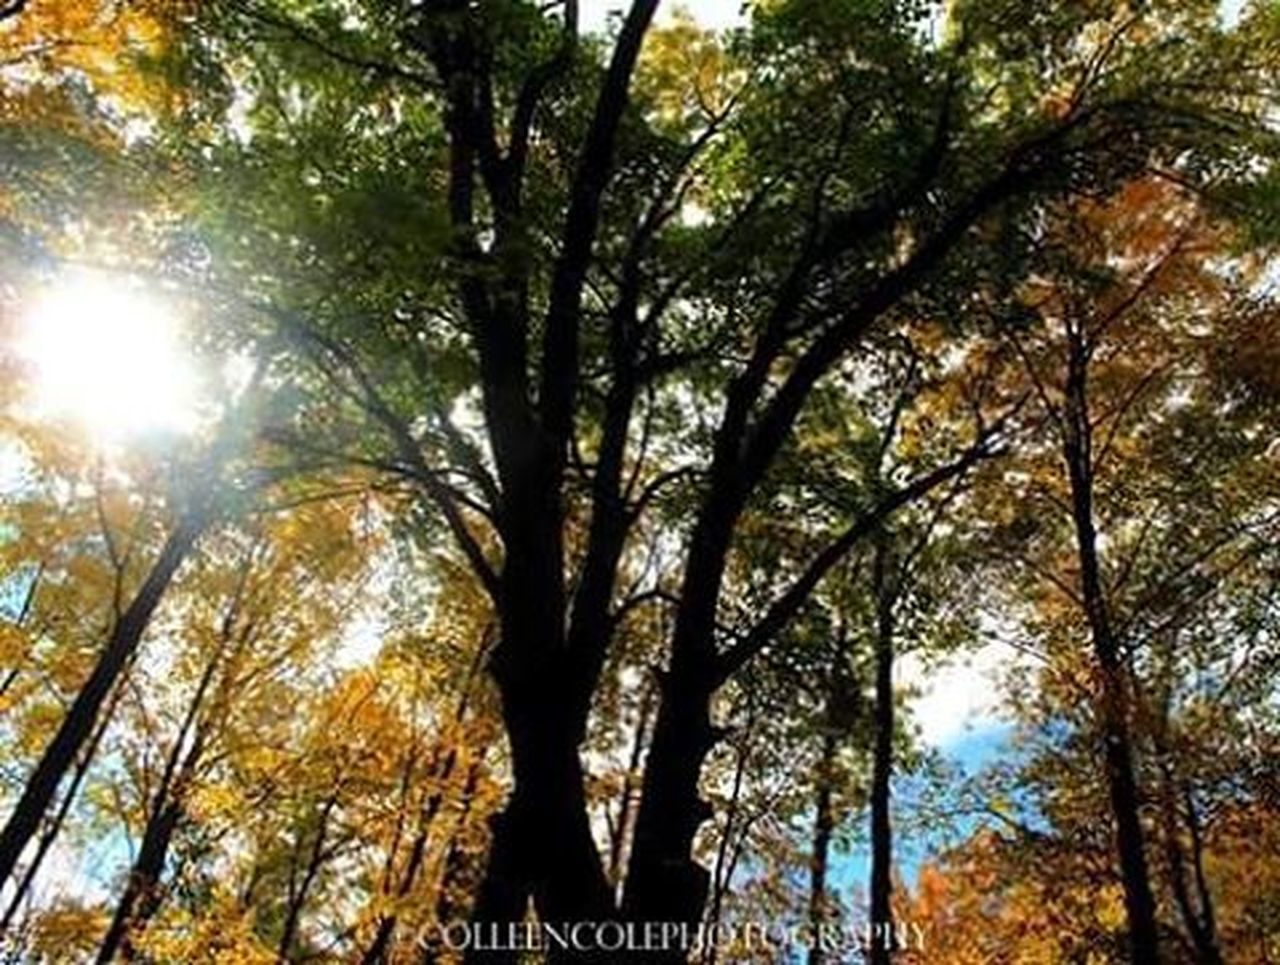 tree, nature, forest, low angle view, outdoors, beauty in nature, scenics, sunlight, branch, day, no people, sky